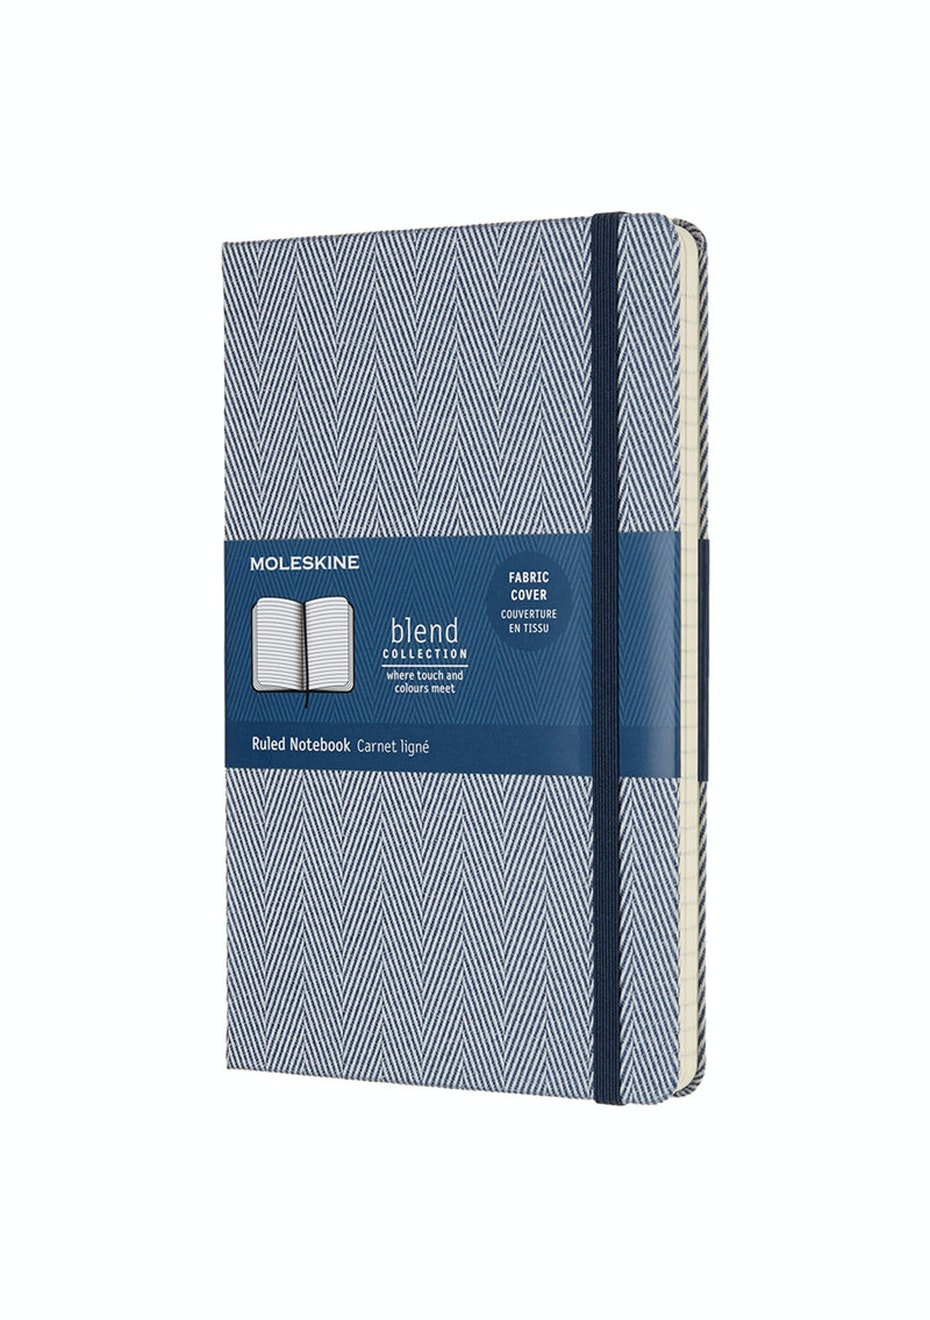 Moleskine - Limited Edition Blend Notebook - Ruled - Large